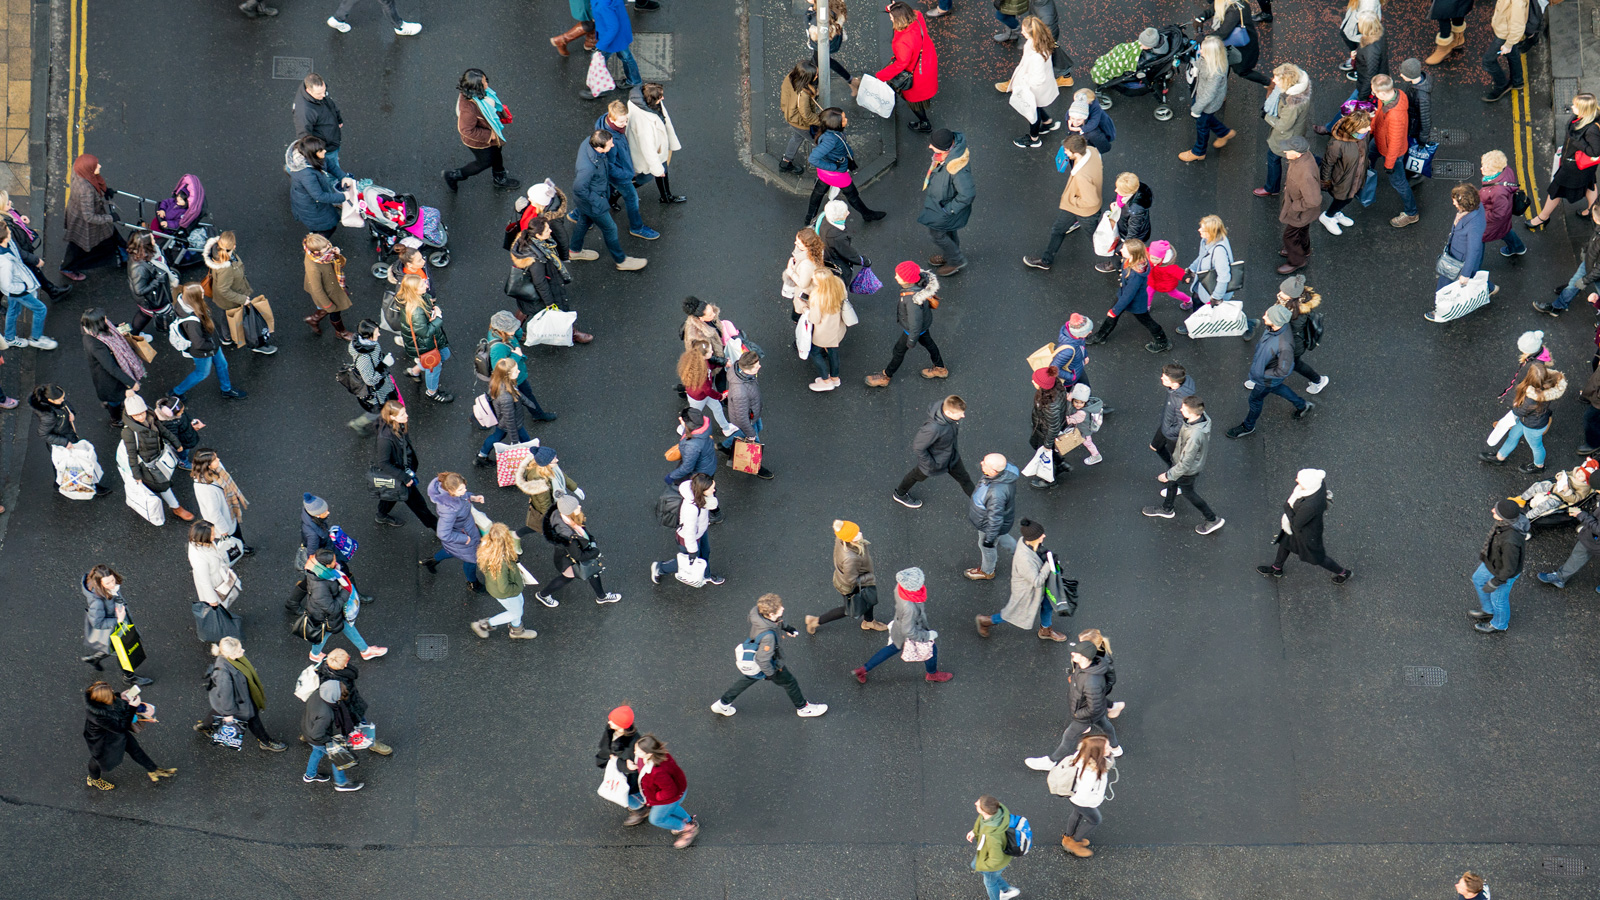 Photograph of a crowd of shoppers